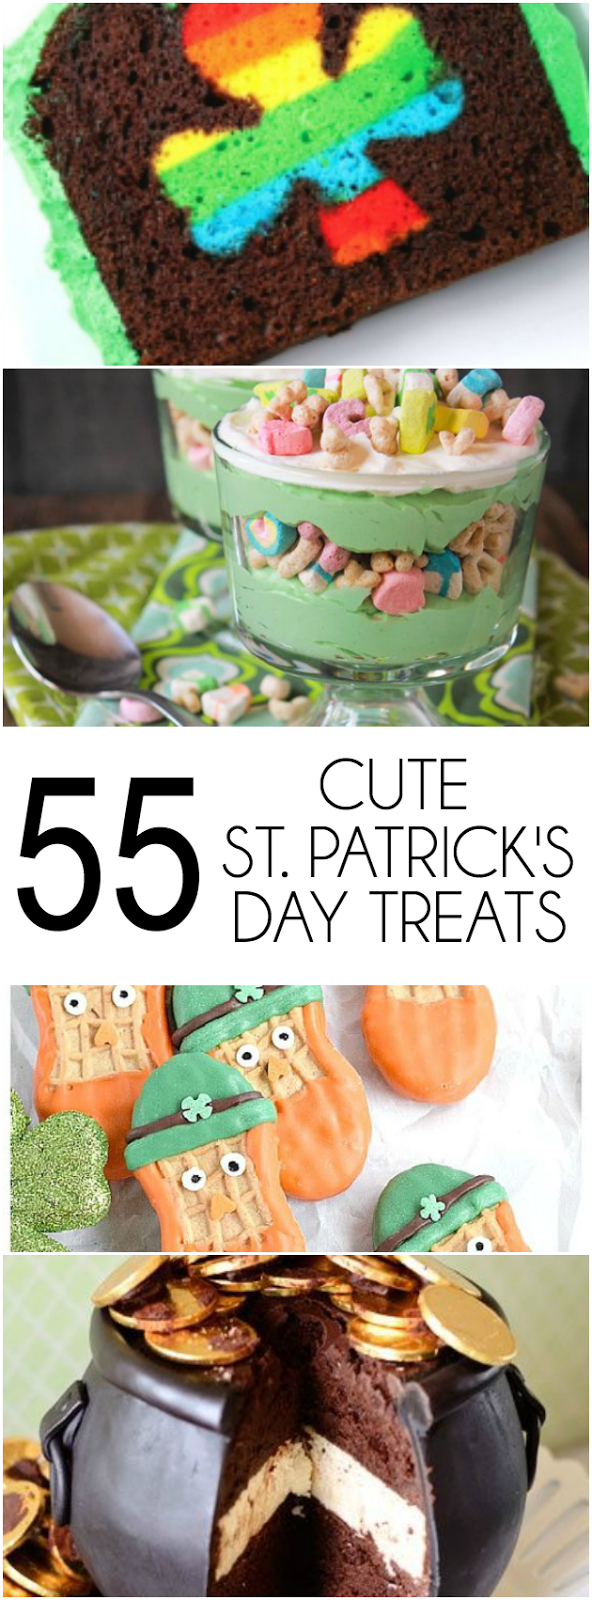 55+ Cute St. Patrick's Day Treats that kids of all ages will love including Lucky Charms French Toast, Mint Chocolate Donuts, and Pot of Gold Cupcakes!